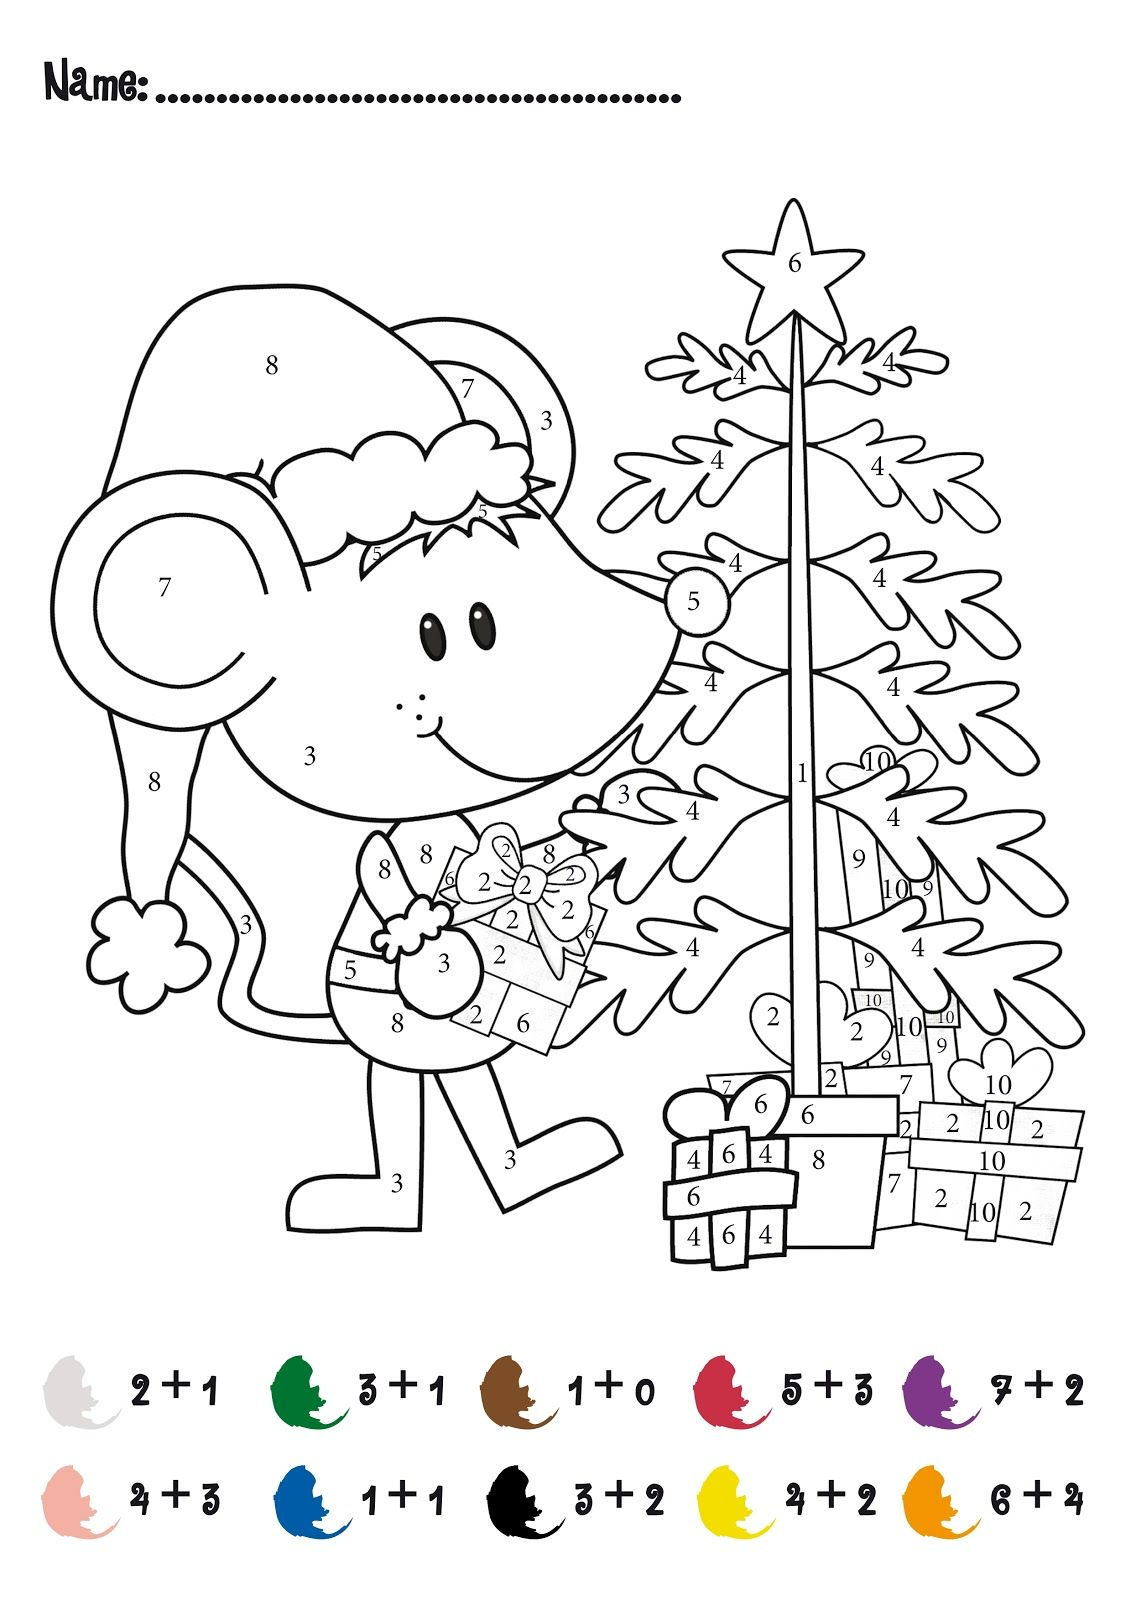 Worksheets Color By Number Christmas Worksheets christmas color by numbers printables addition math activity free for pre k